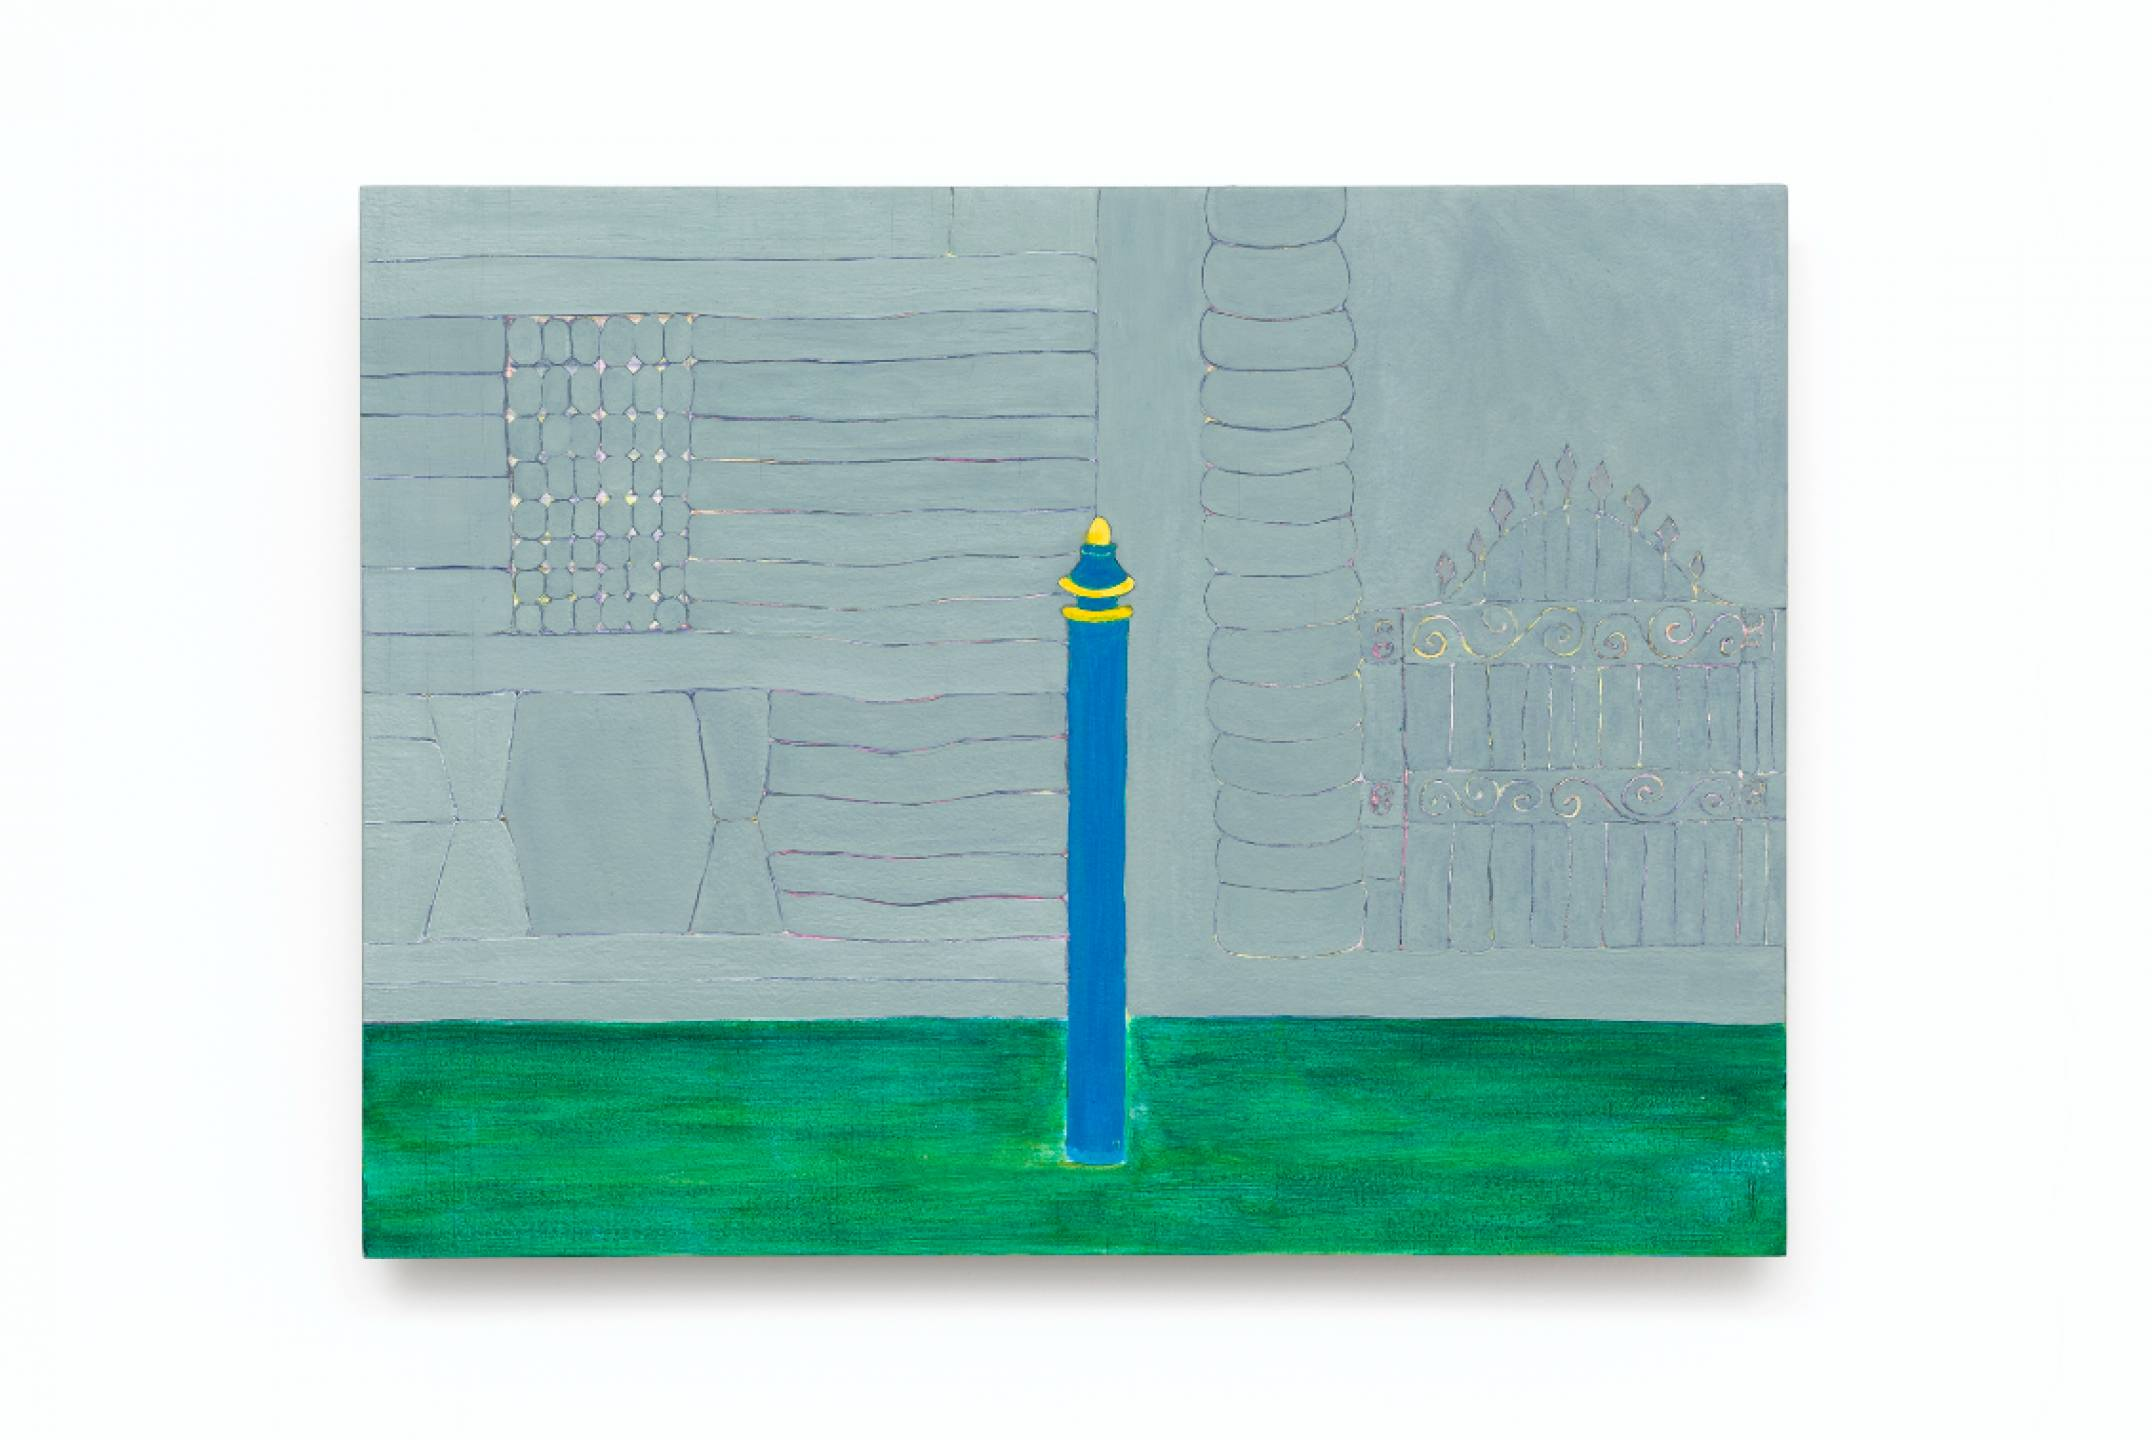 Patricia Leite, <em>untitled, from Veneza series</em>, 2015, oil on wood, 30 × 40 cm - Mendes Wood DM